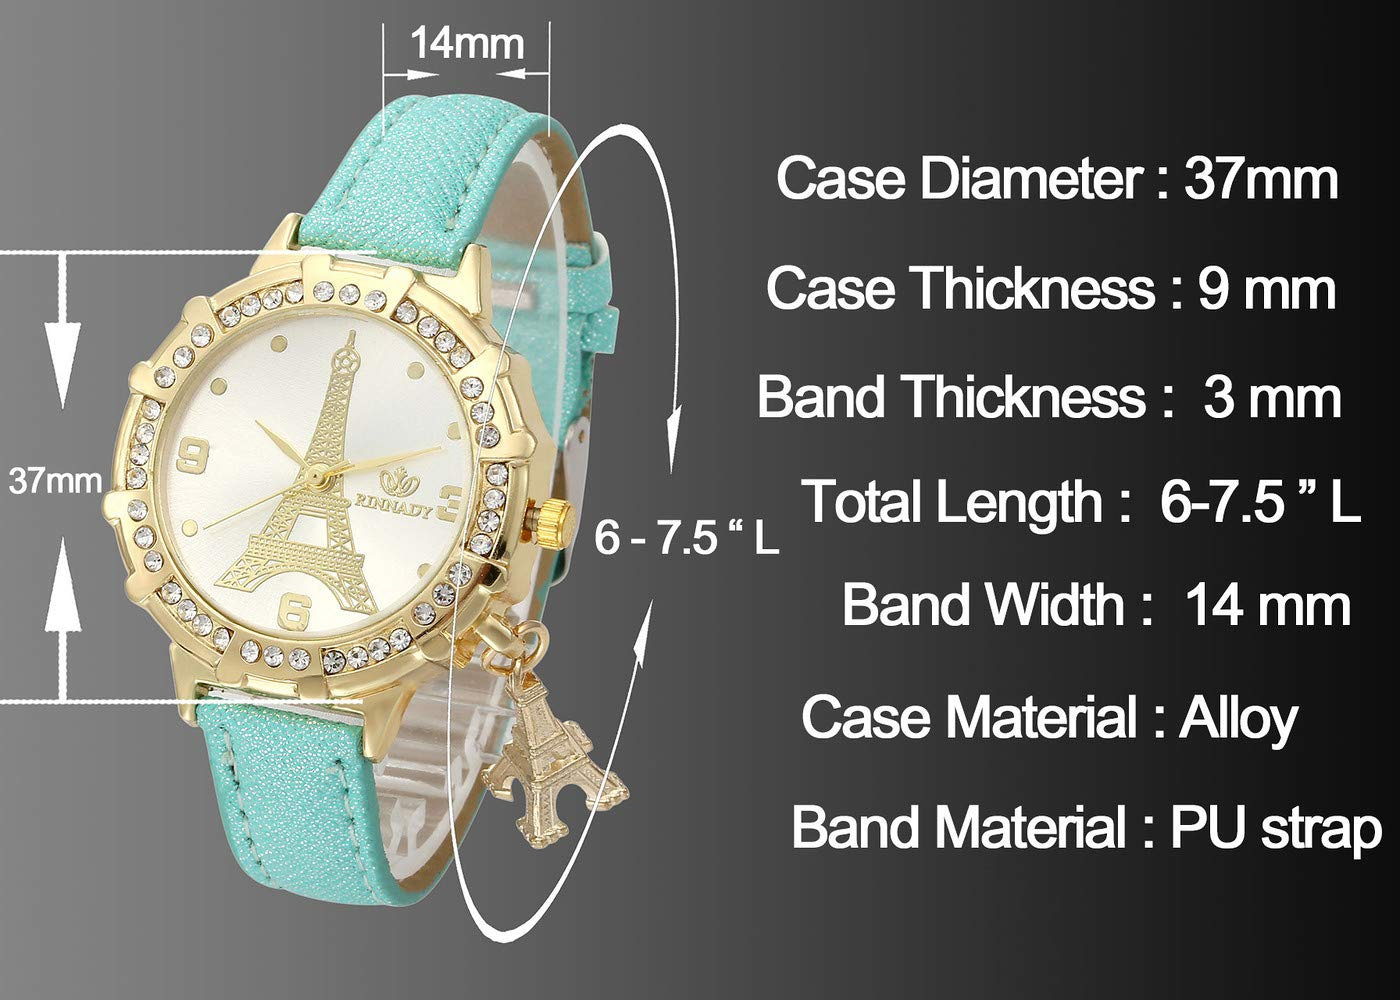 Top Plaza Womens Ladies Fashion Casual Leather Analog Quartz Wrist Watch Unique Tower Pattern Rhinestones Golen Case Dress Watches with Small Tower Charm(White)